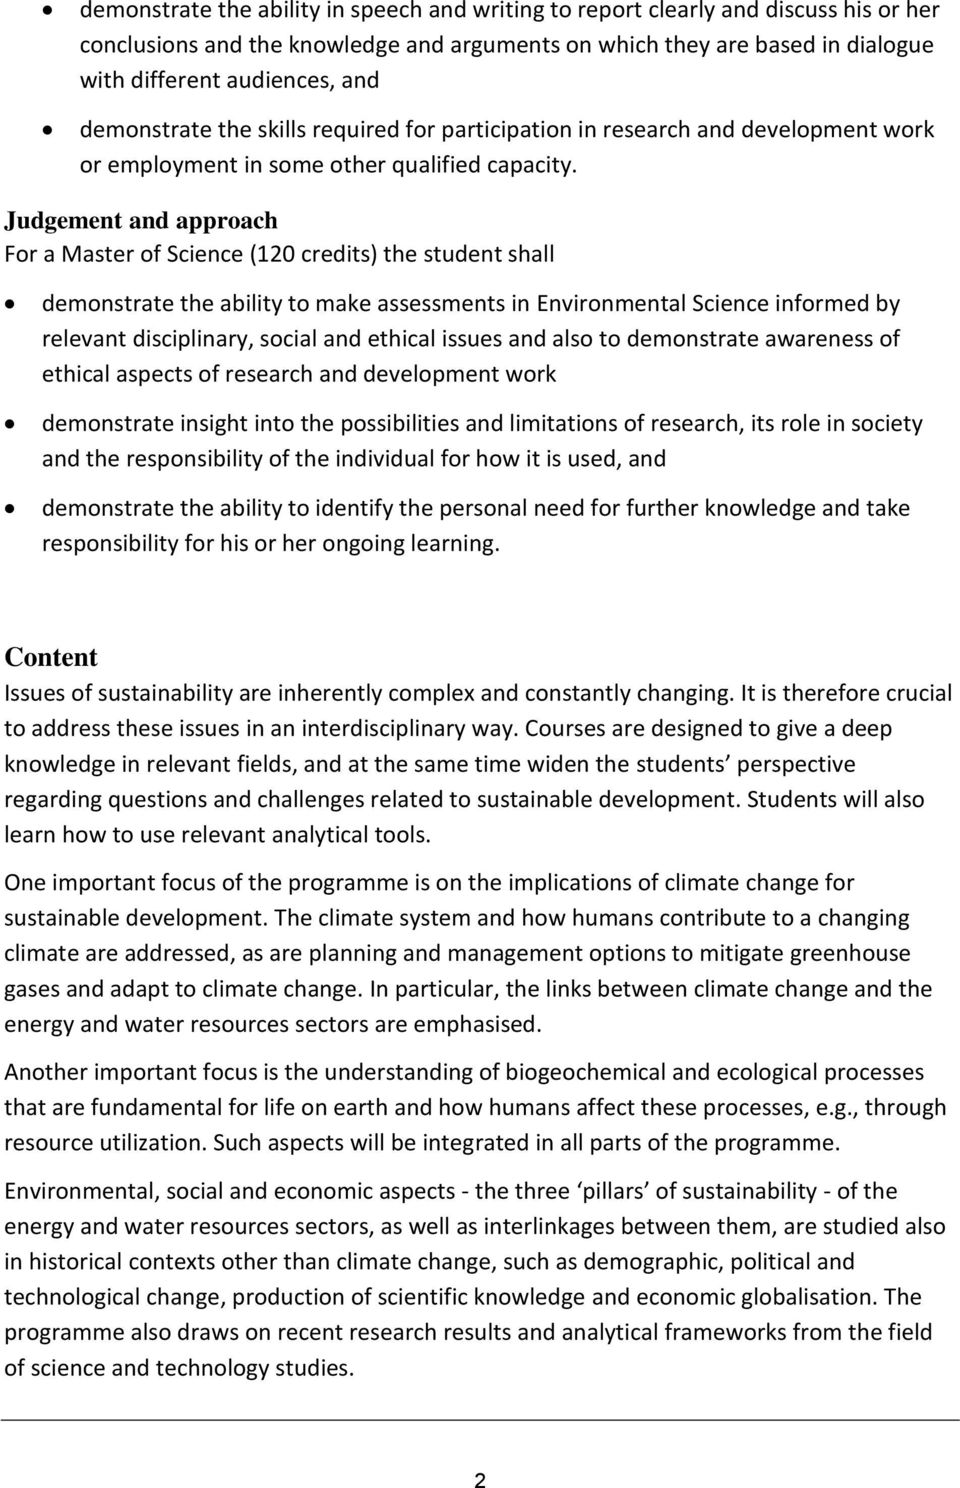 Judgement and approach For a Master of Science (120 credits) the student shall demonstrate the ability to make assessments in Environmental Science informed by relevant disciplinary, social and